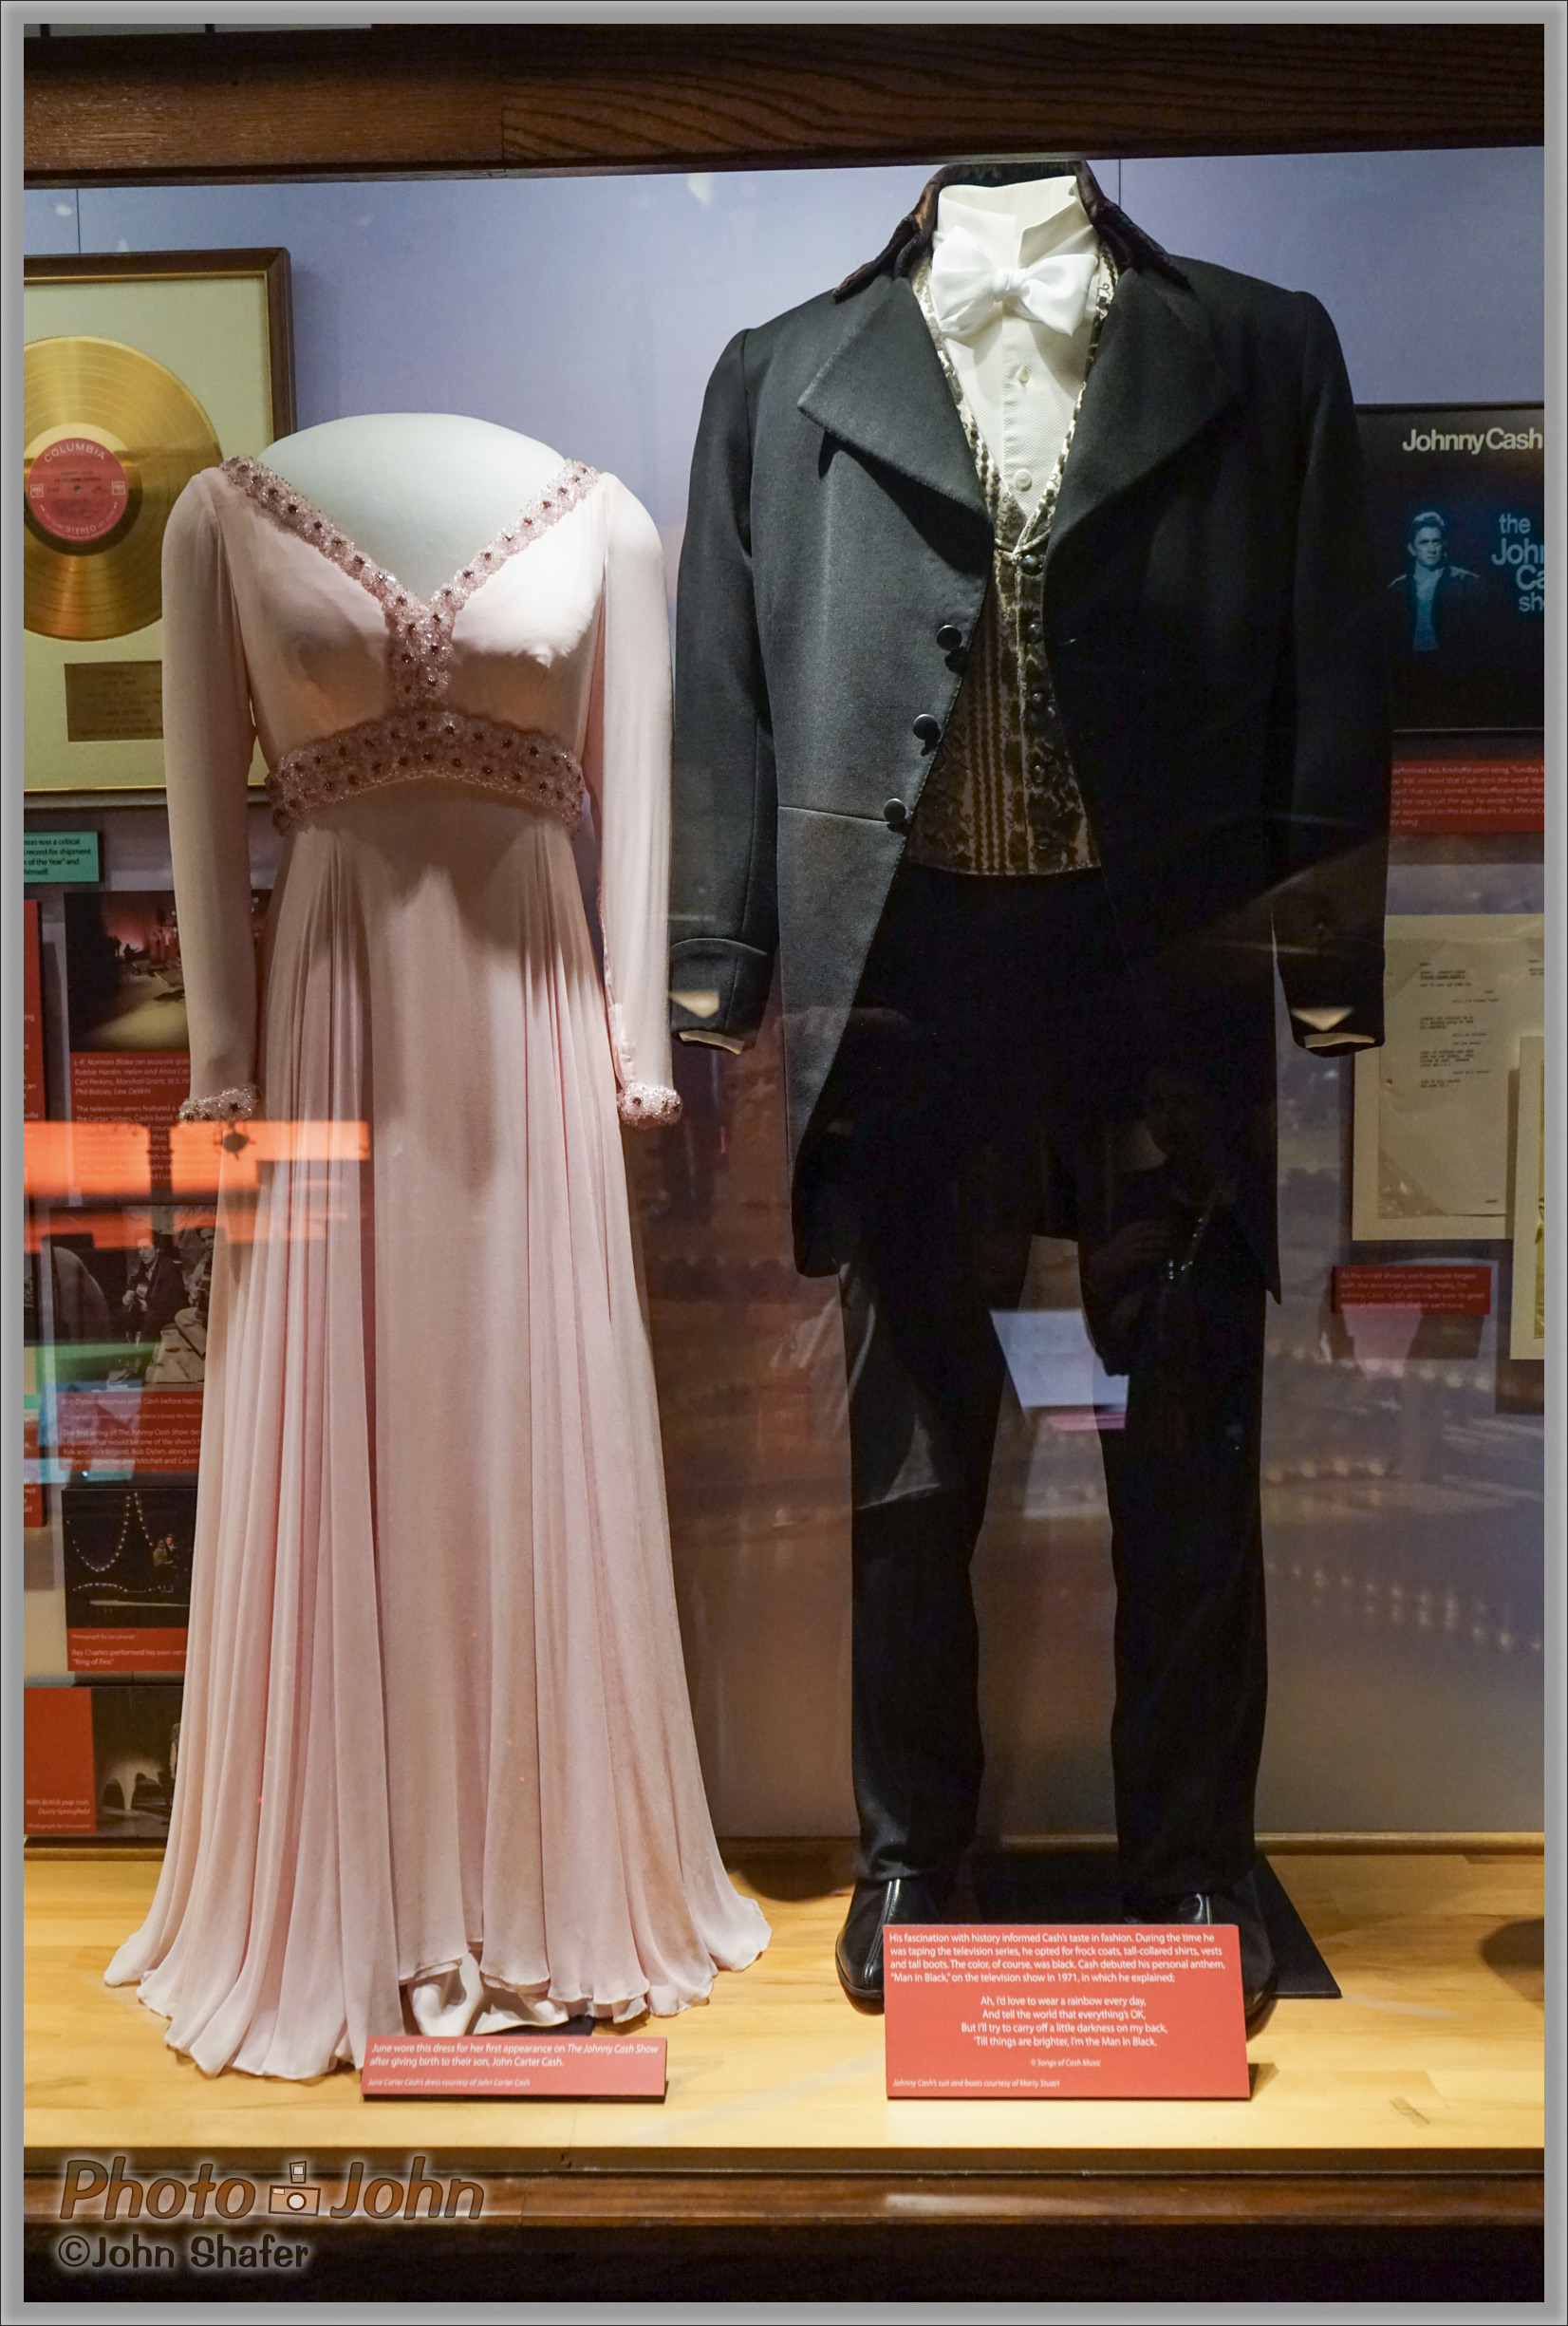 Sony Alpha A7R - June Carter & Johnny Cash's Clothes - Ryman Auditorium